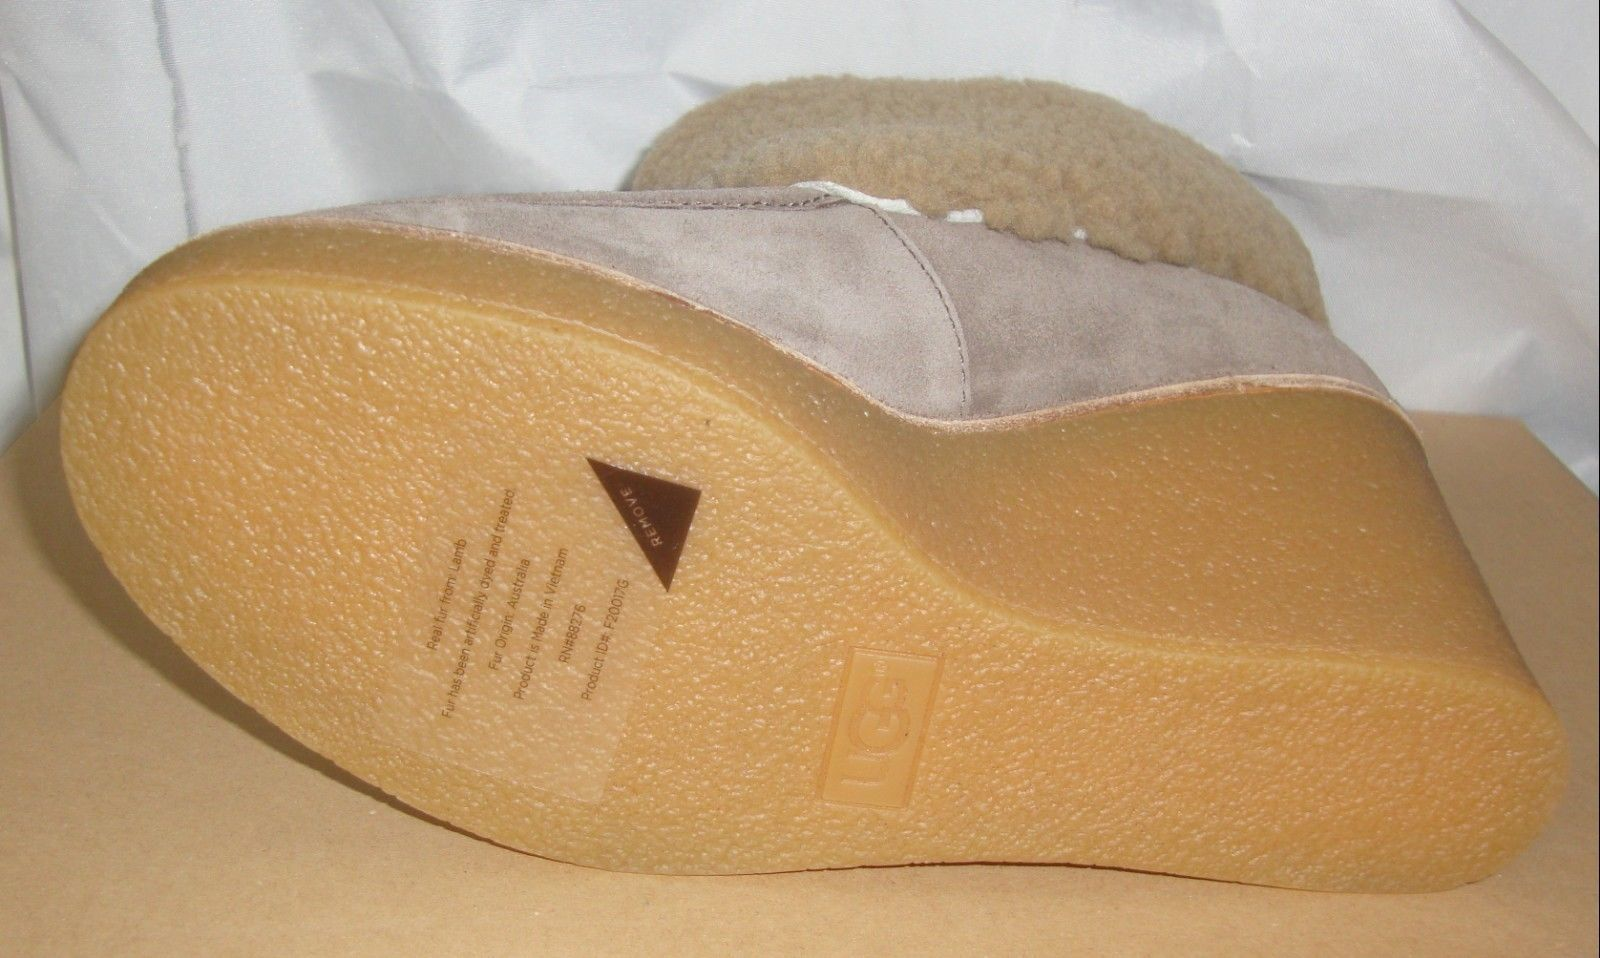 56a8b28e189 Ugg Coldin Mouse Suede Sheepskin Cuff Wedge and 50 similar items